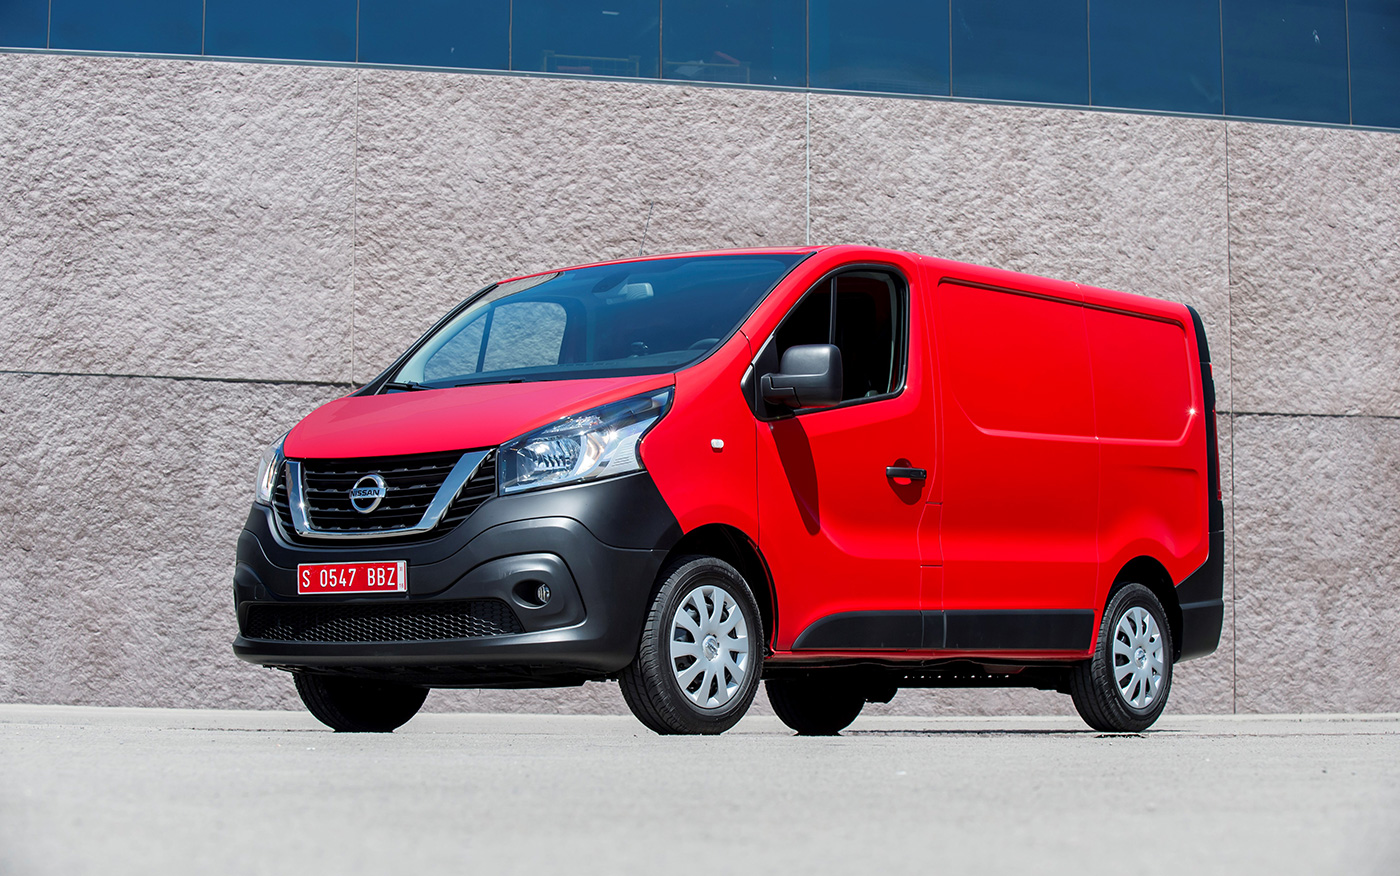 Nissan Nv300 1.6 DCi 2.9t L2h1 Visia 95ps